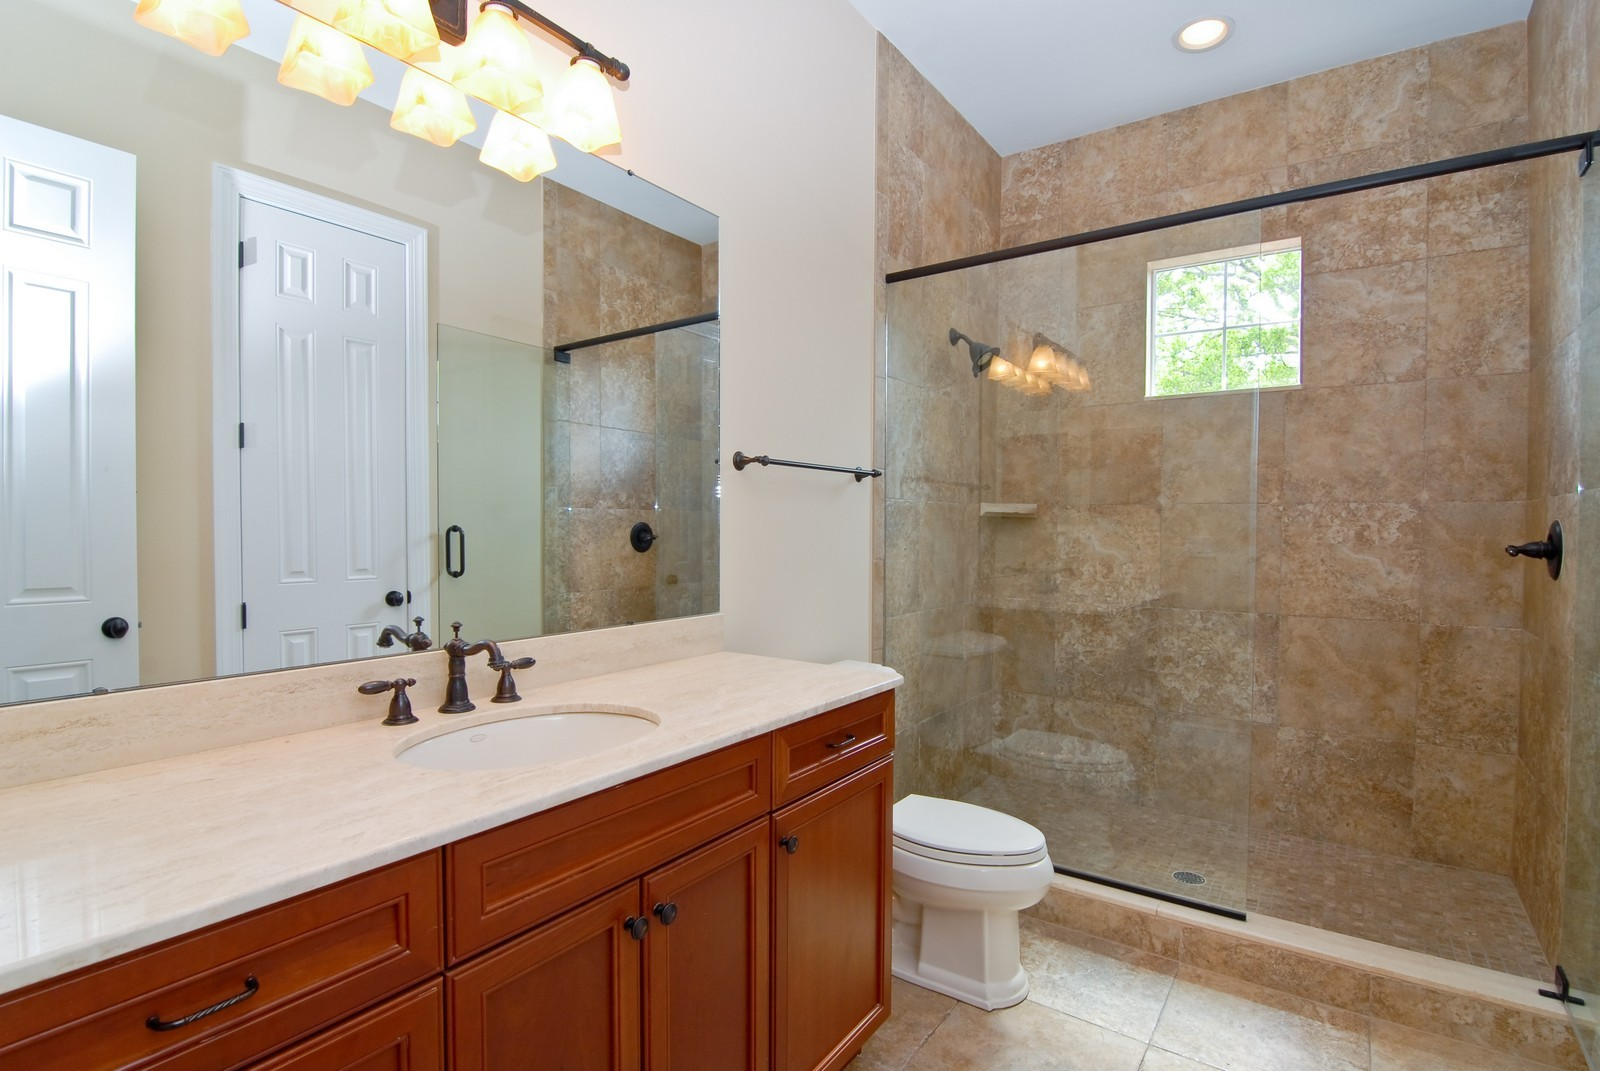 Real Estate Photography - 3107 Fountain Blvd, Tampa, FL, 33609 - Bathroom